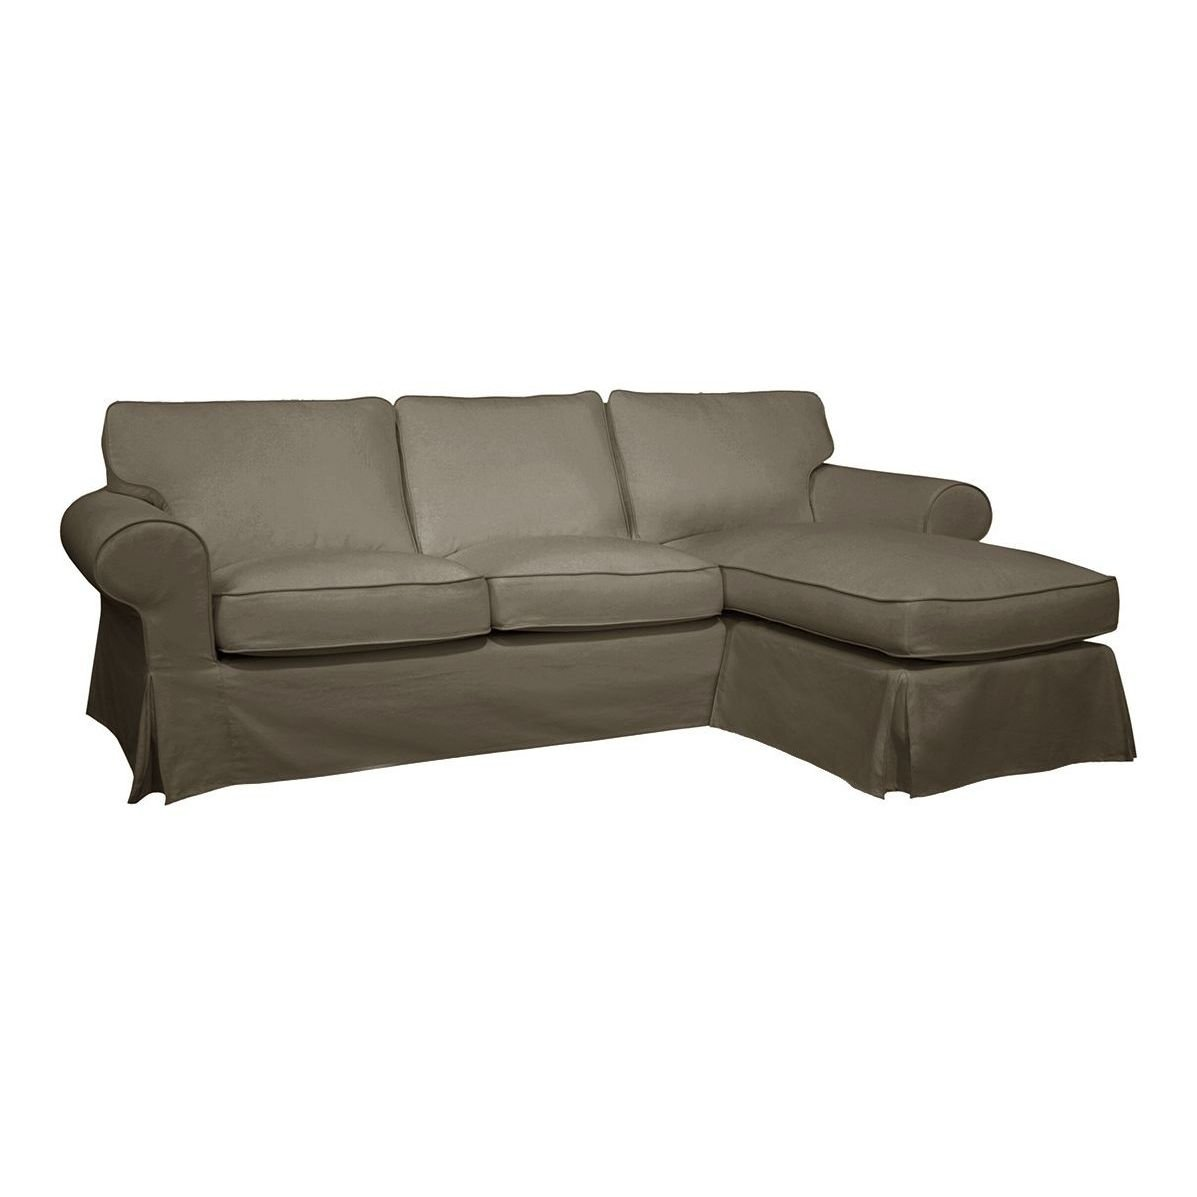 Sof s chaise longue el corte ingl s for Sofa tres plazas chaise longue